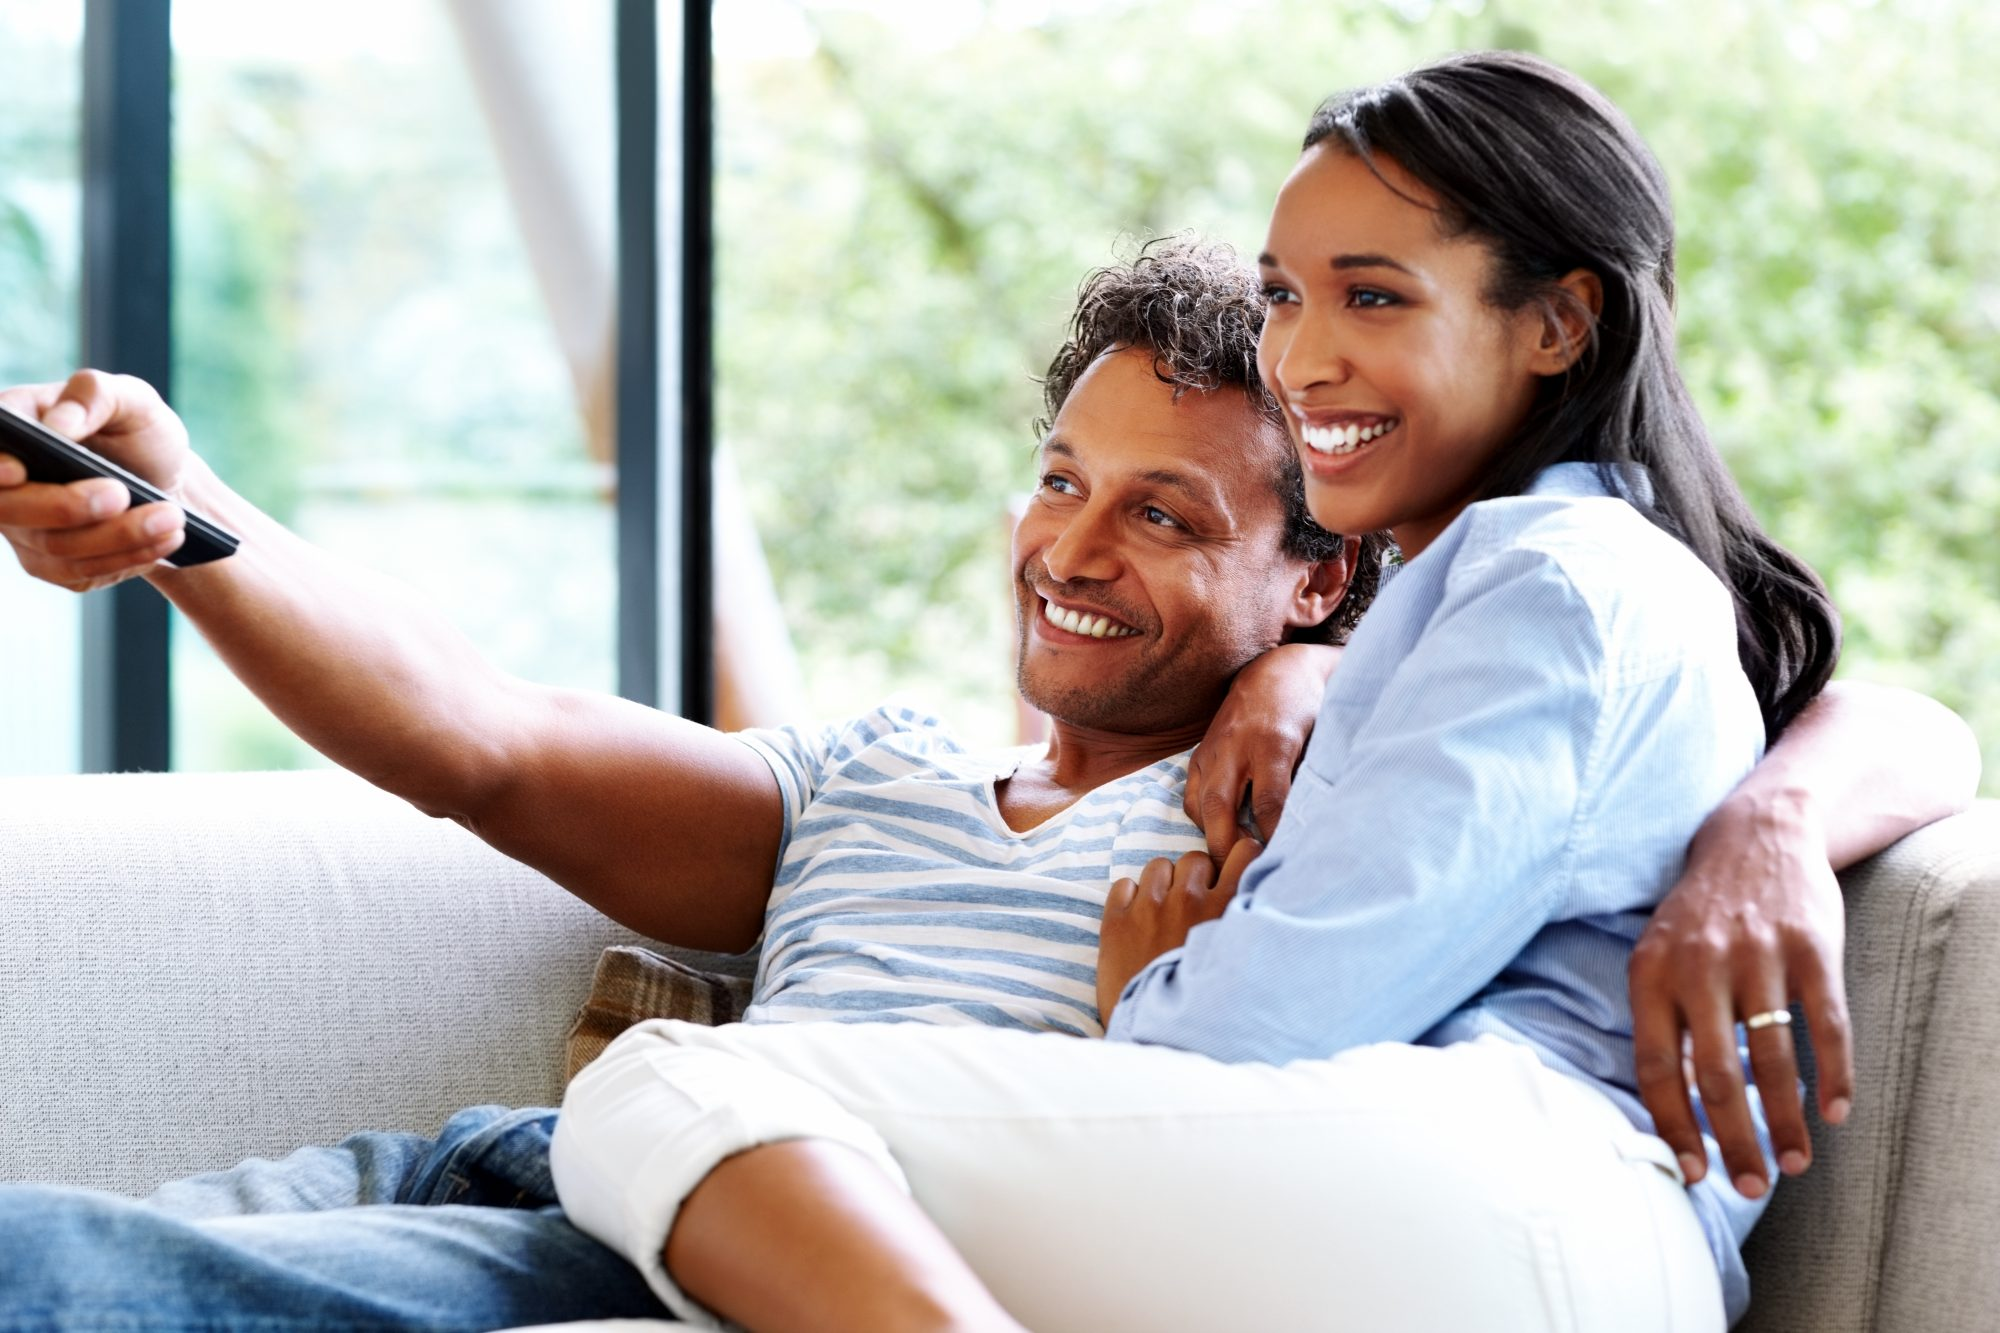 Couple sitting on the couch watching TV